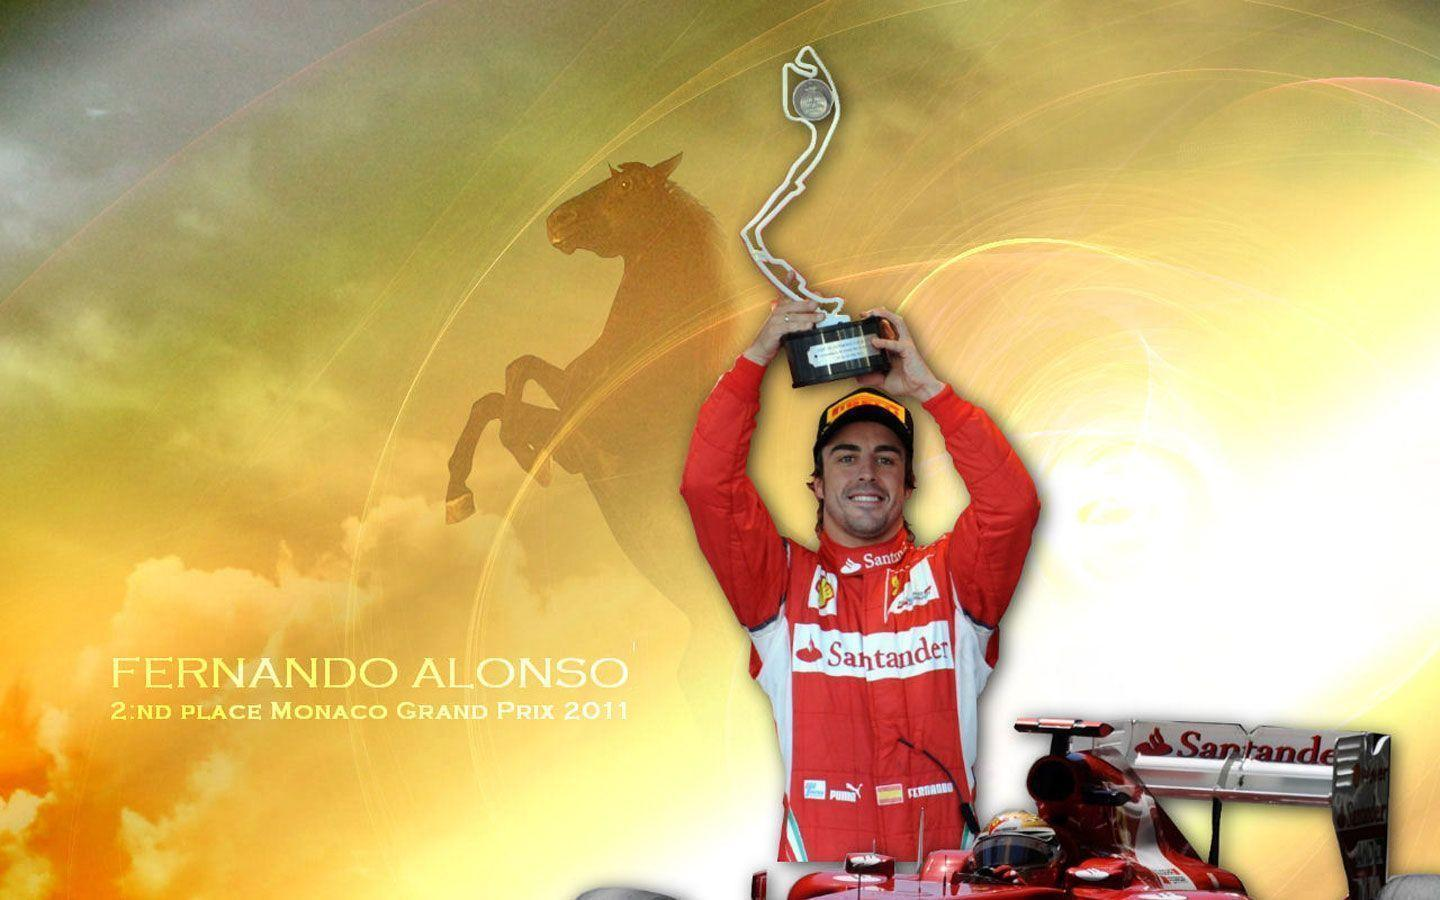 fernando alonso wallpapers and - photo #11